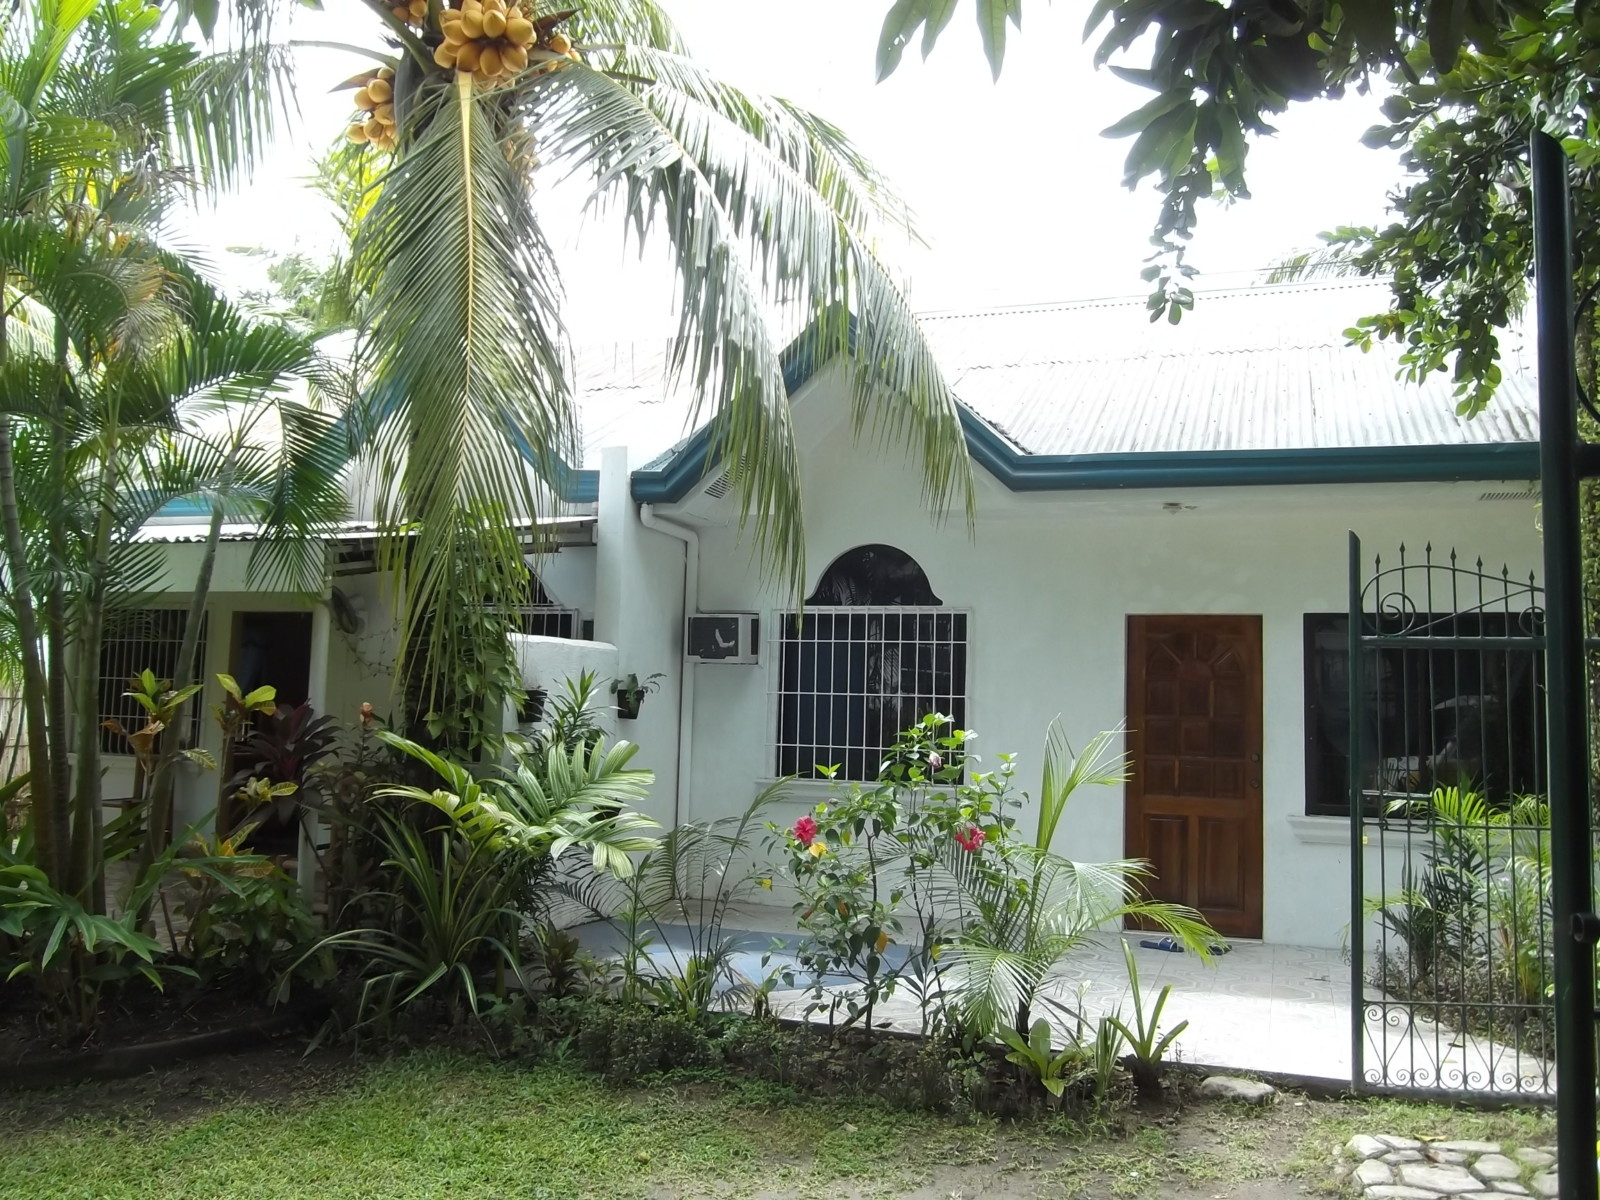 RENTAL COTTAGES FOR SALE IN BACONG